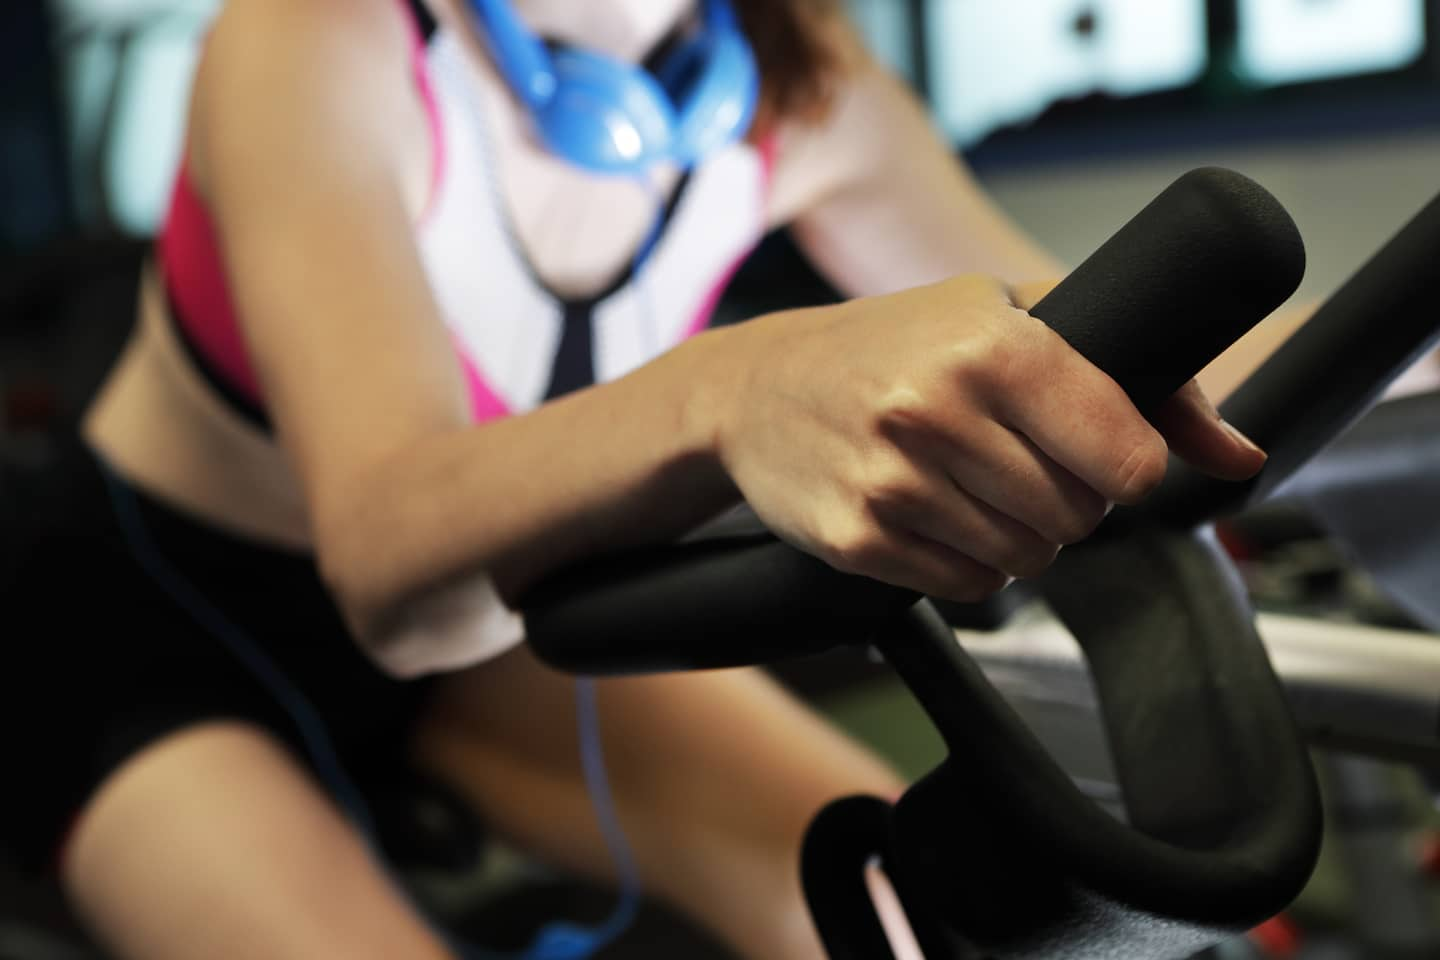 Canadian Spin studio followed public health guidelines. But 61 people still had covid-19.